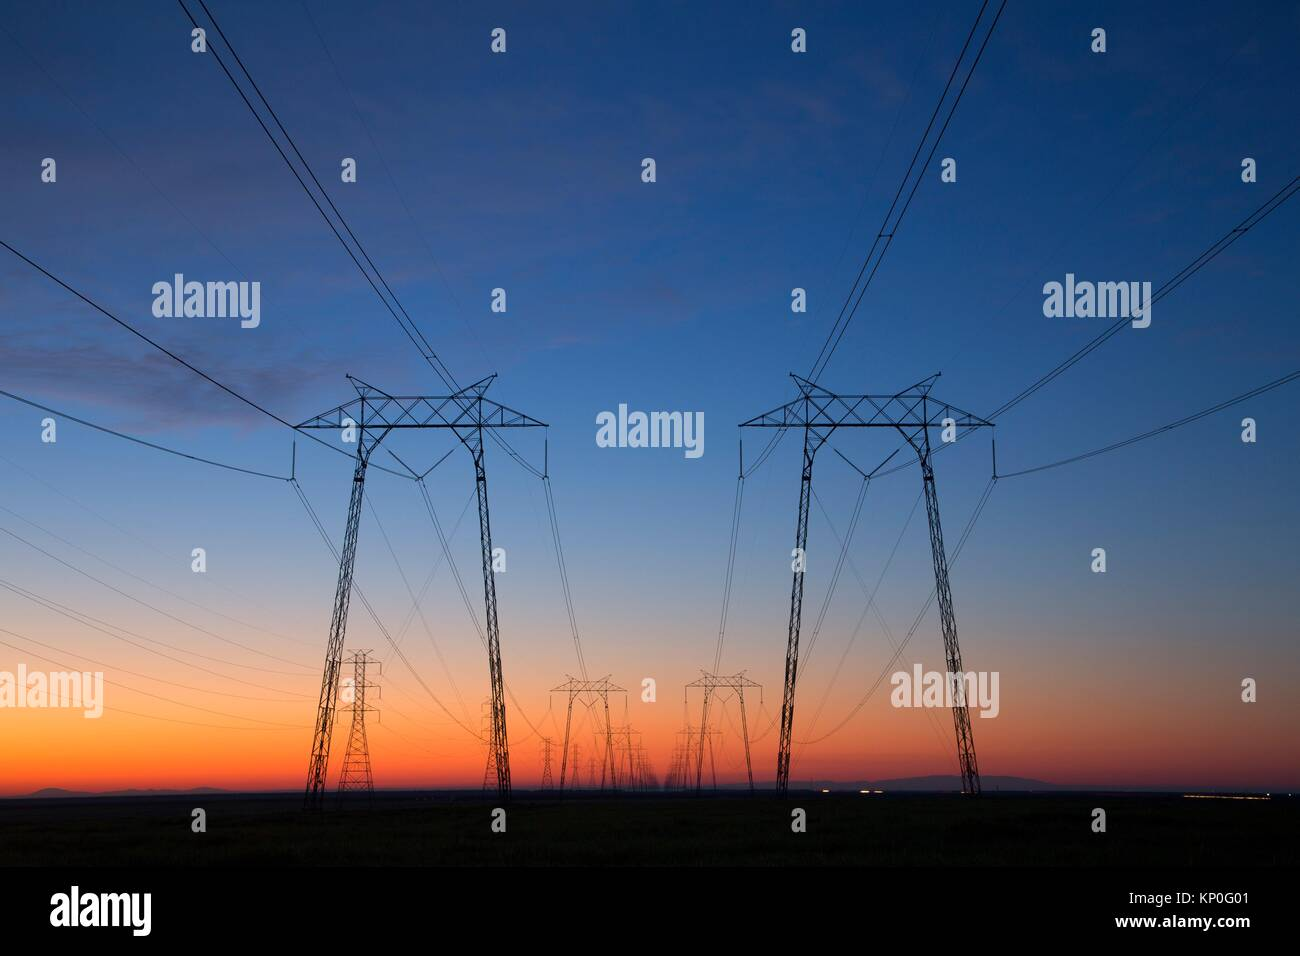 Utility lines dawn, Kings County, California. - Stock Image